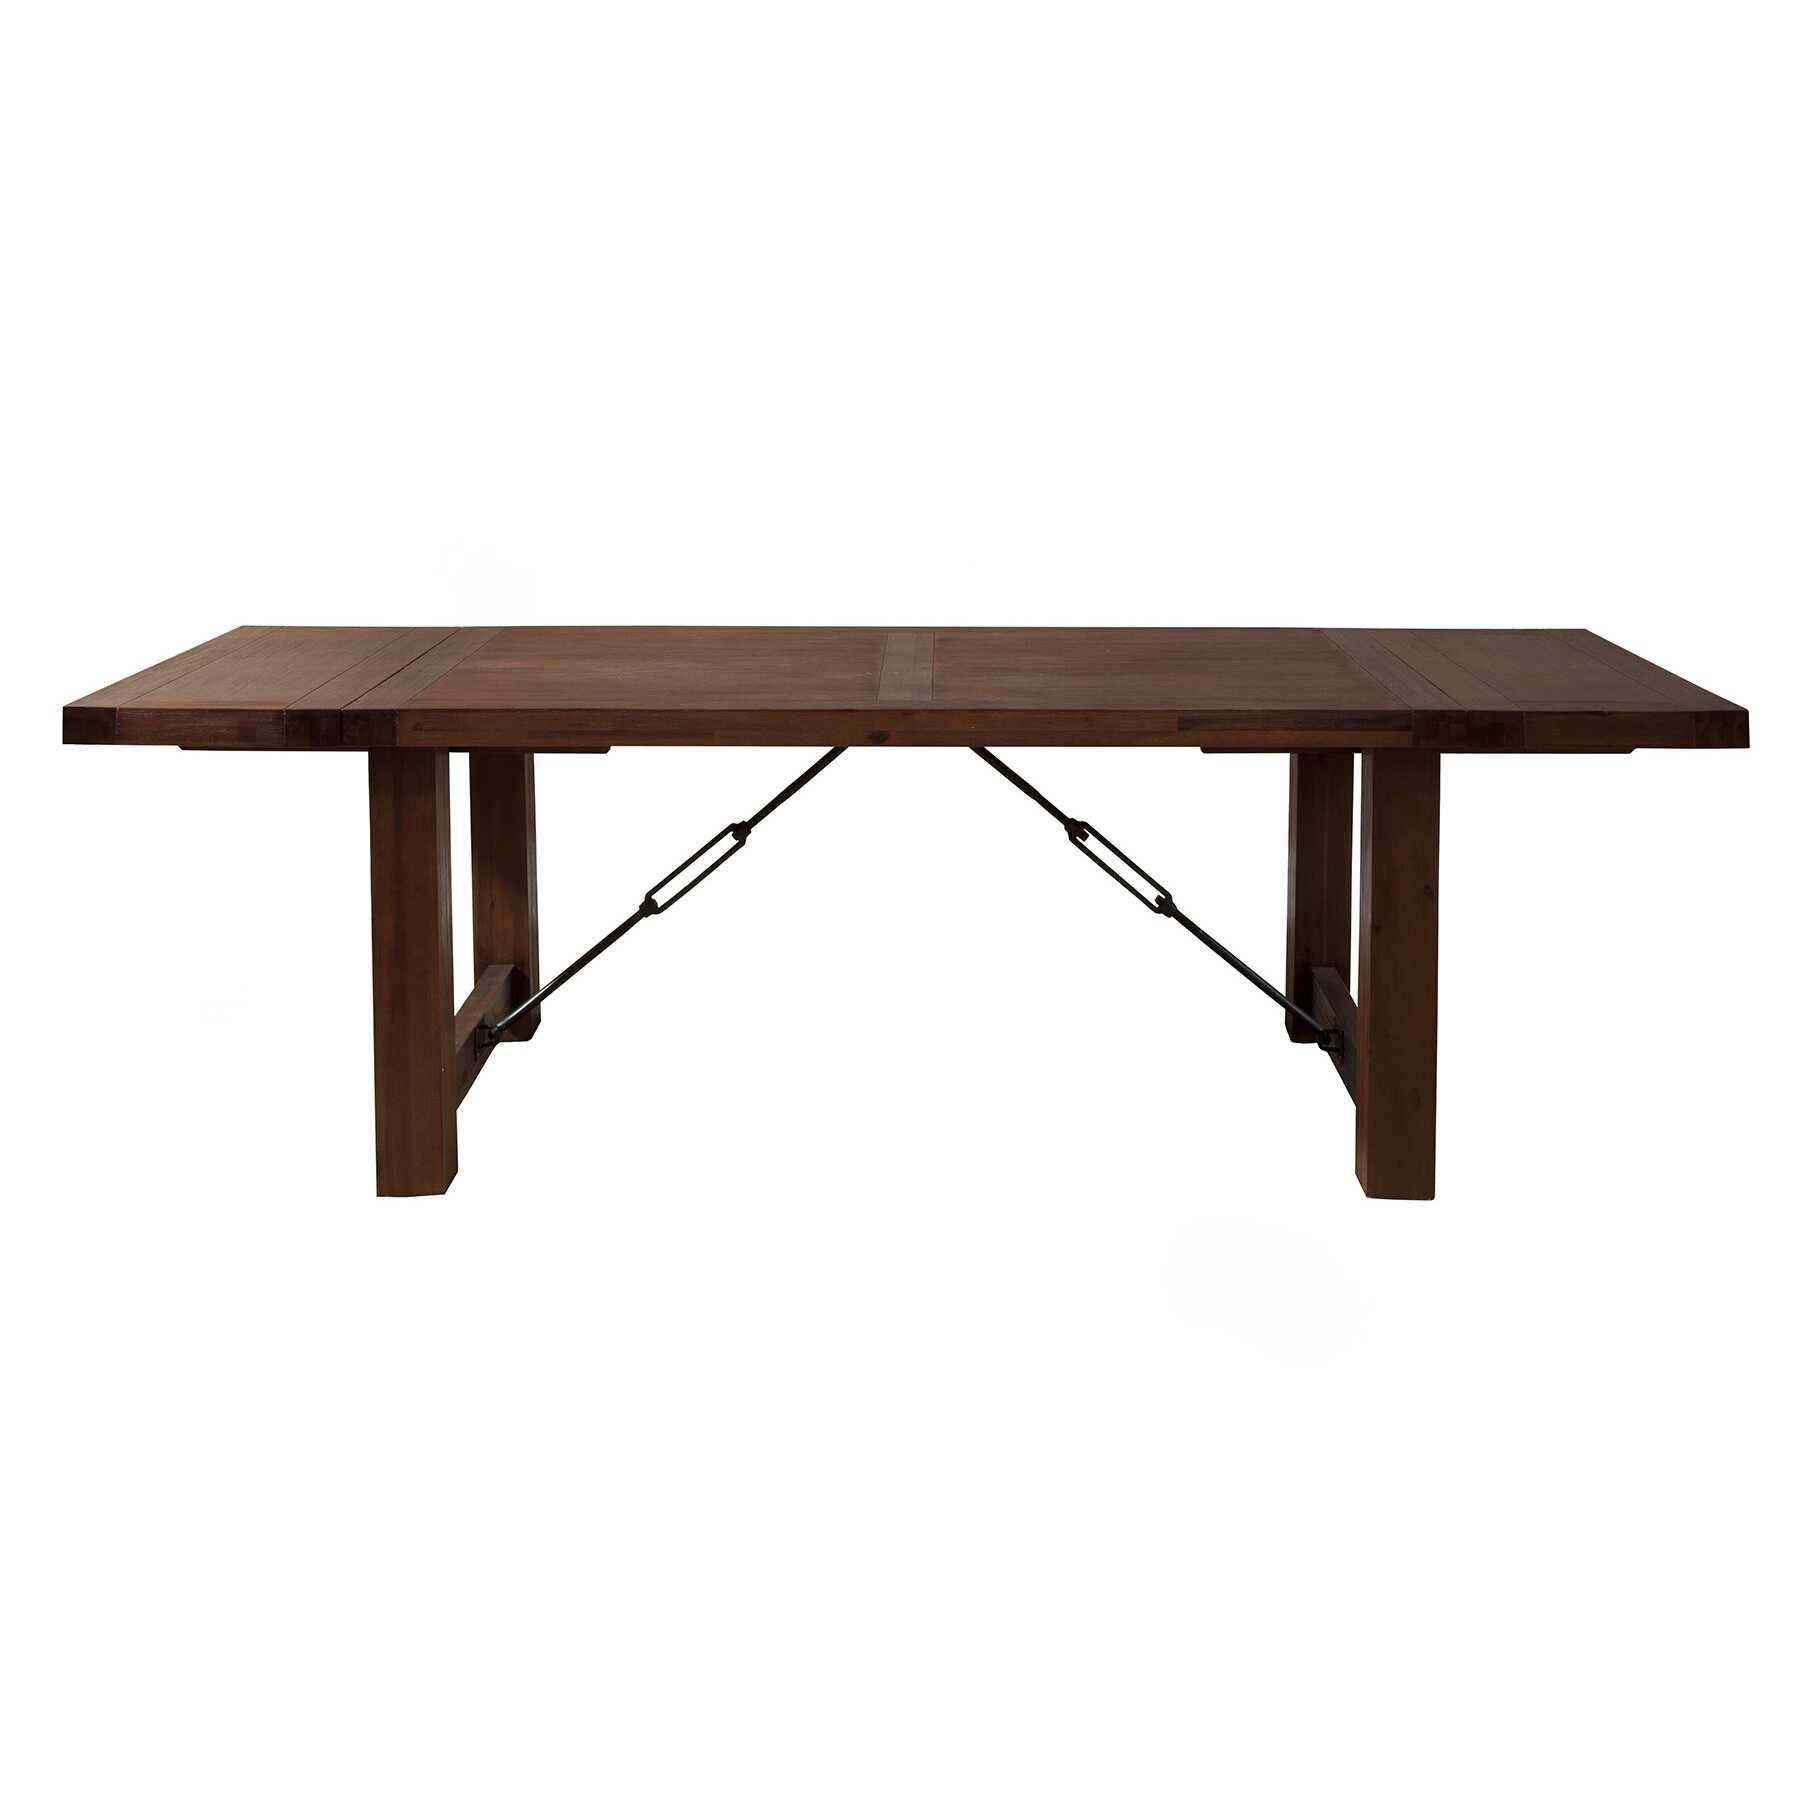 Loon peak piumafua dining table reviews wayfair for Wayfair dining table